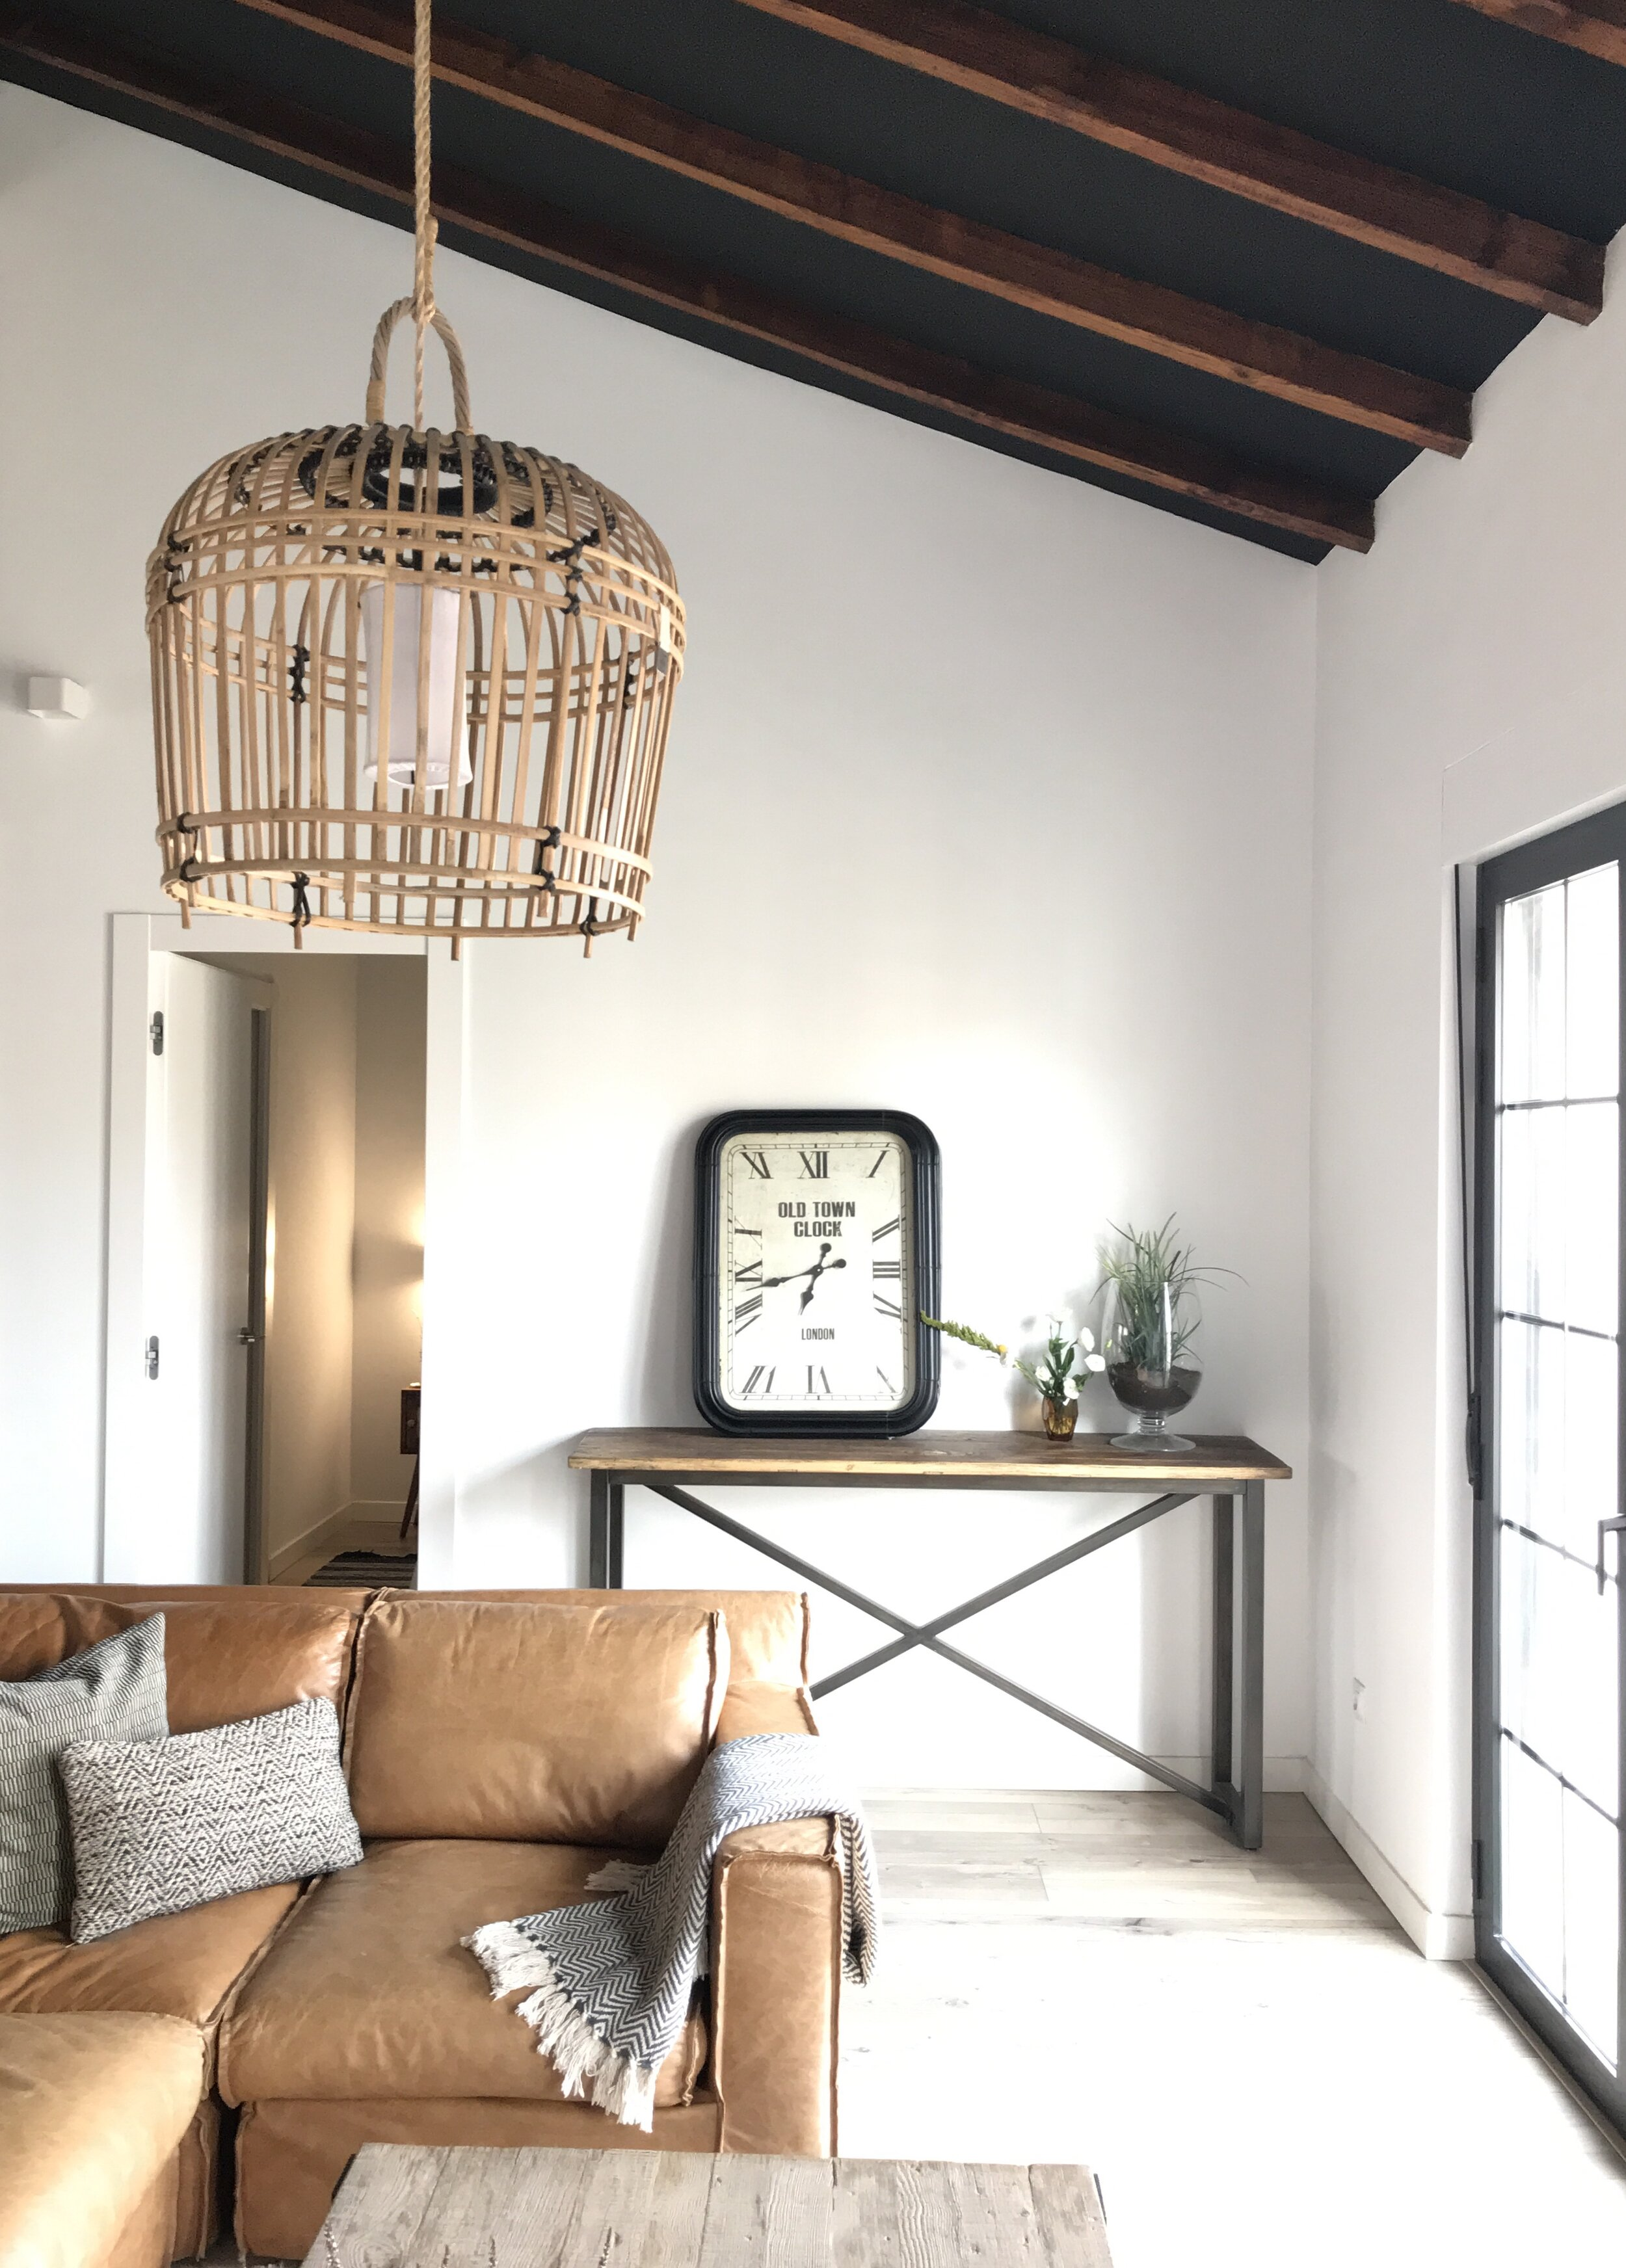 Image of a contemporary living area styled with a warm ochre toned couch, hanging wicker lamp and high beamed ceiling.